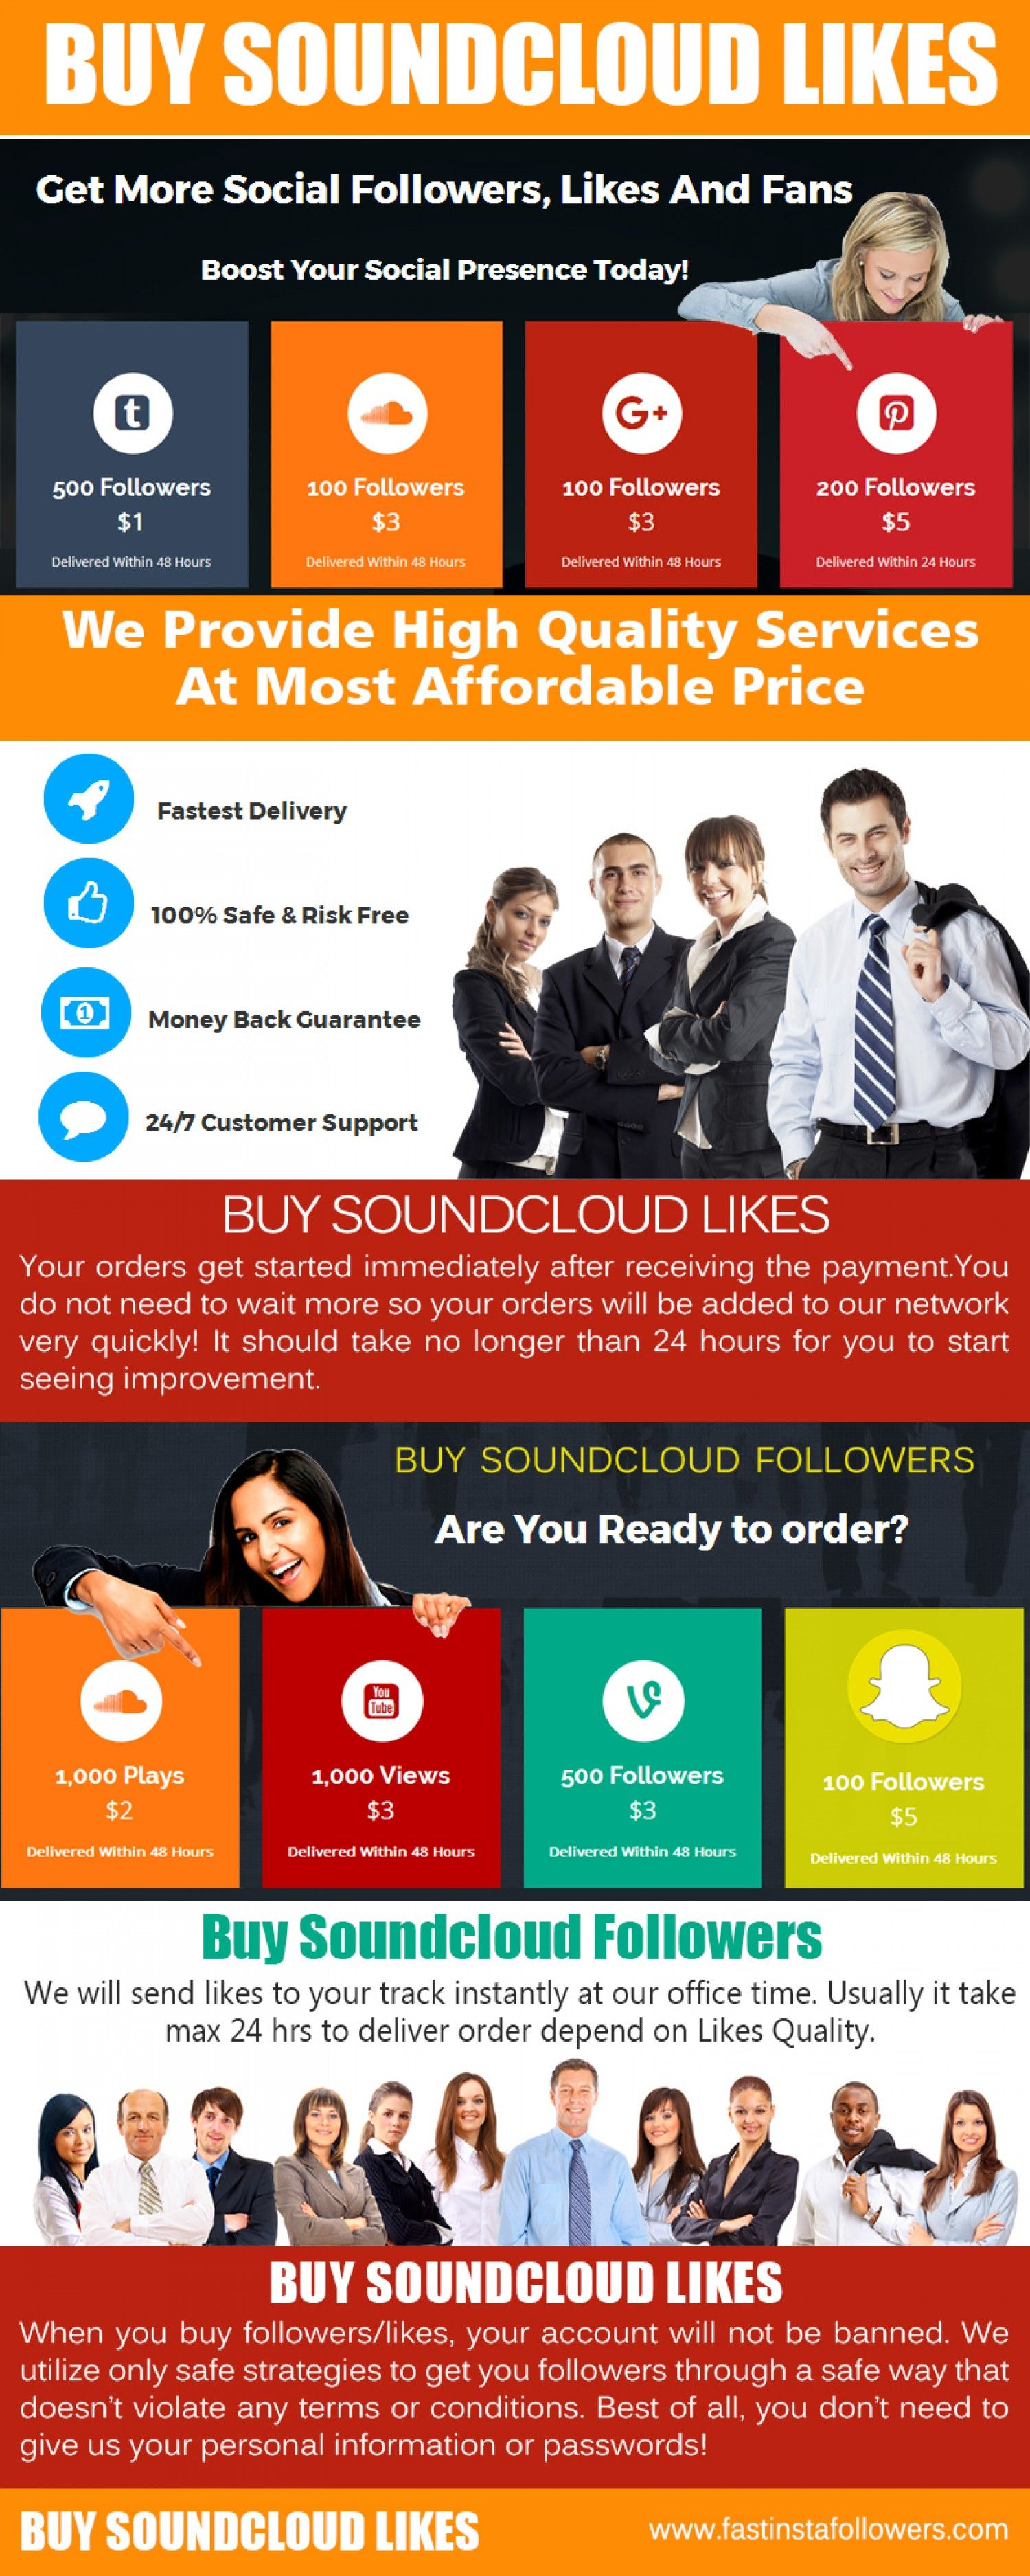 Pin by Buy soundcloud followers on Buy soundcloud likes